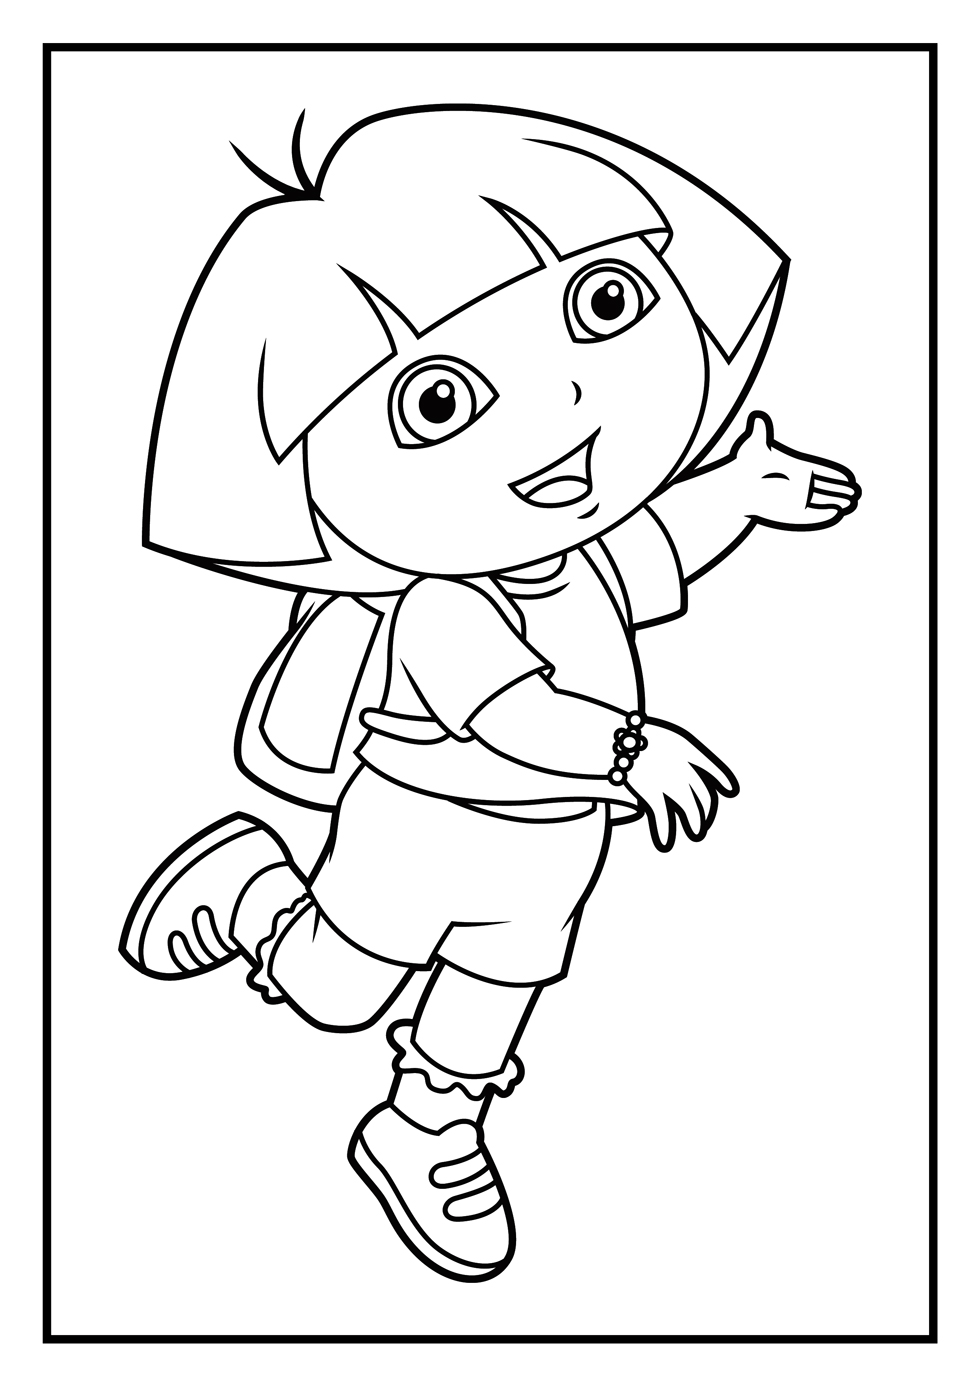 dora face coloring pages - photo#30